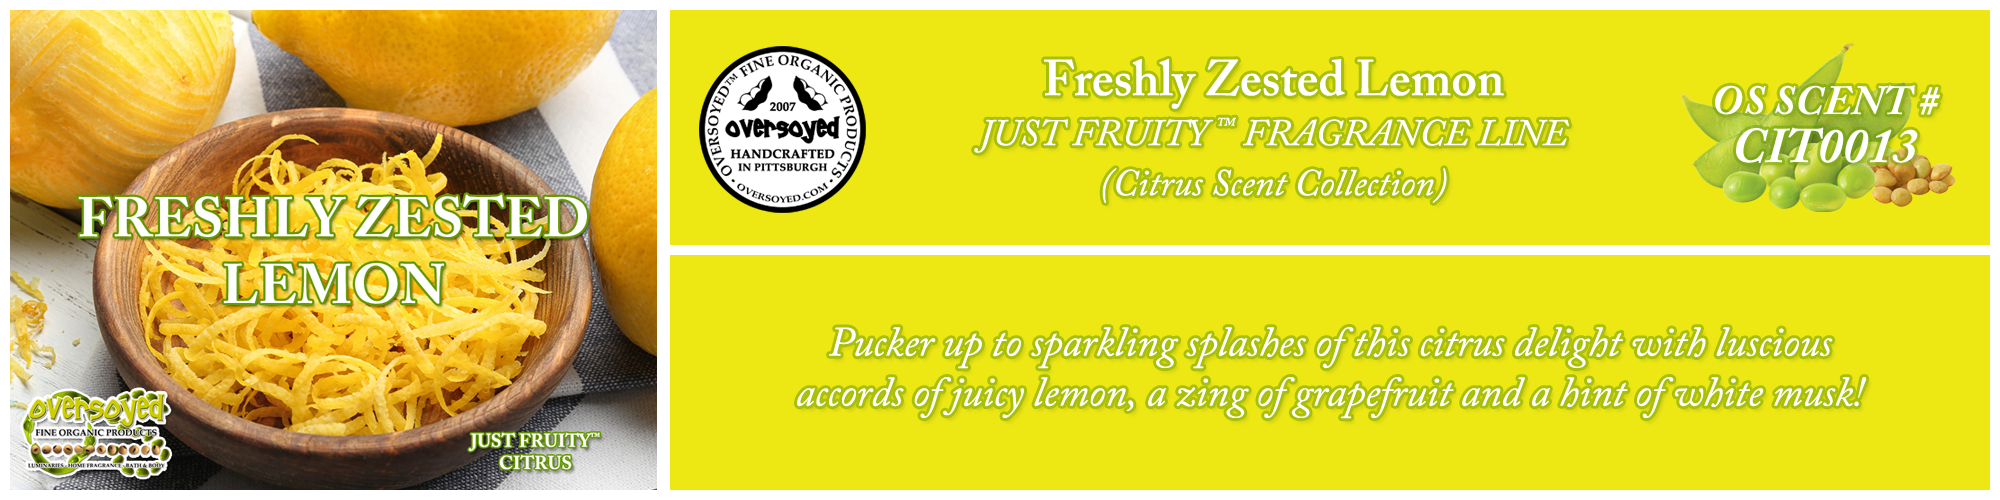 Freshly Zested Lemon Handcrafted Products Collection